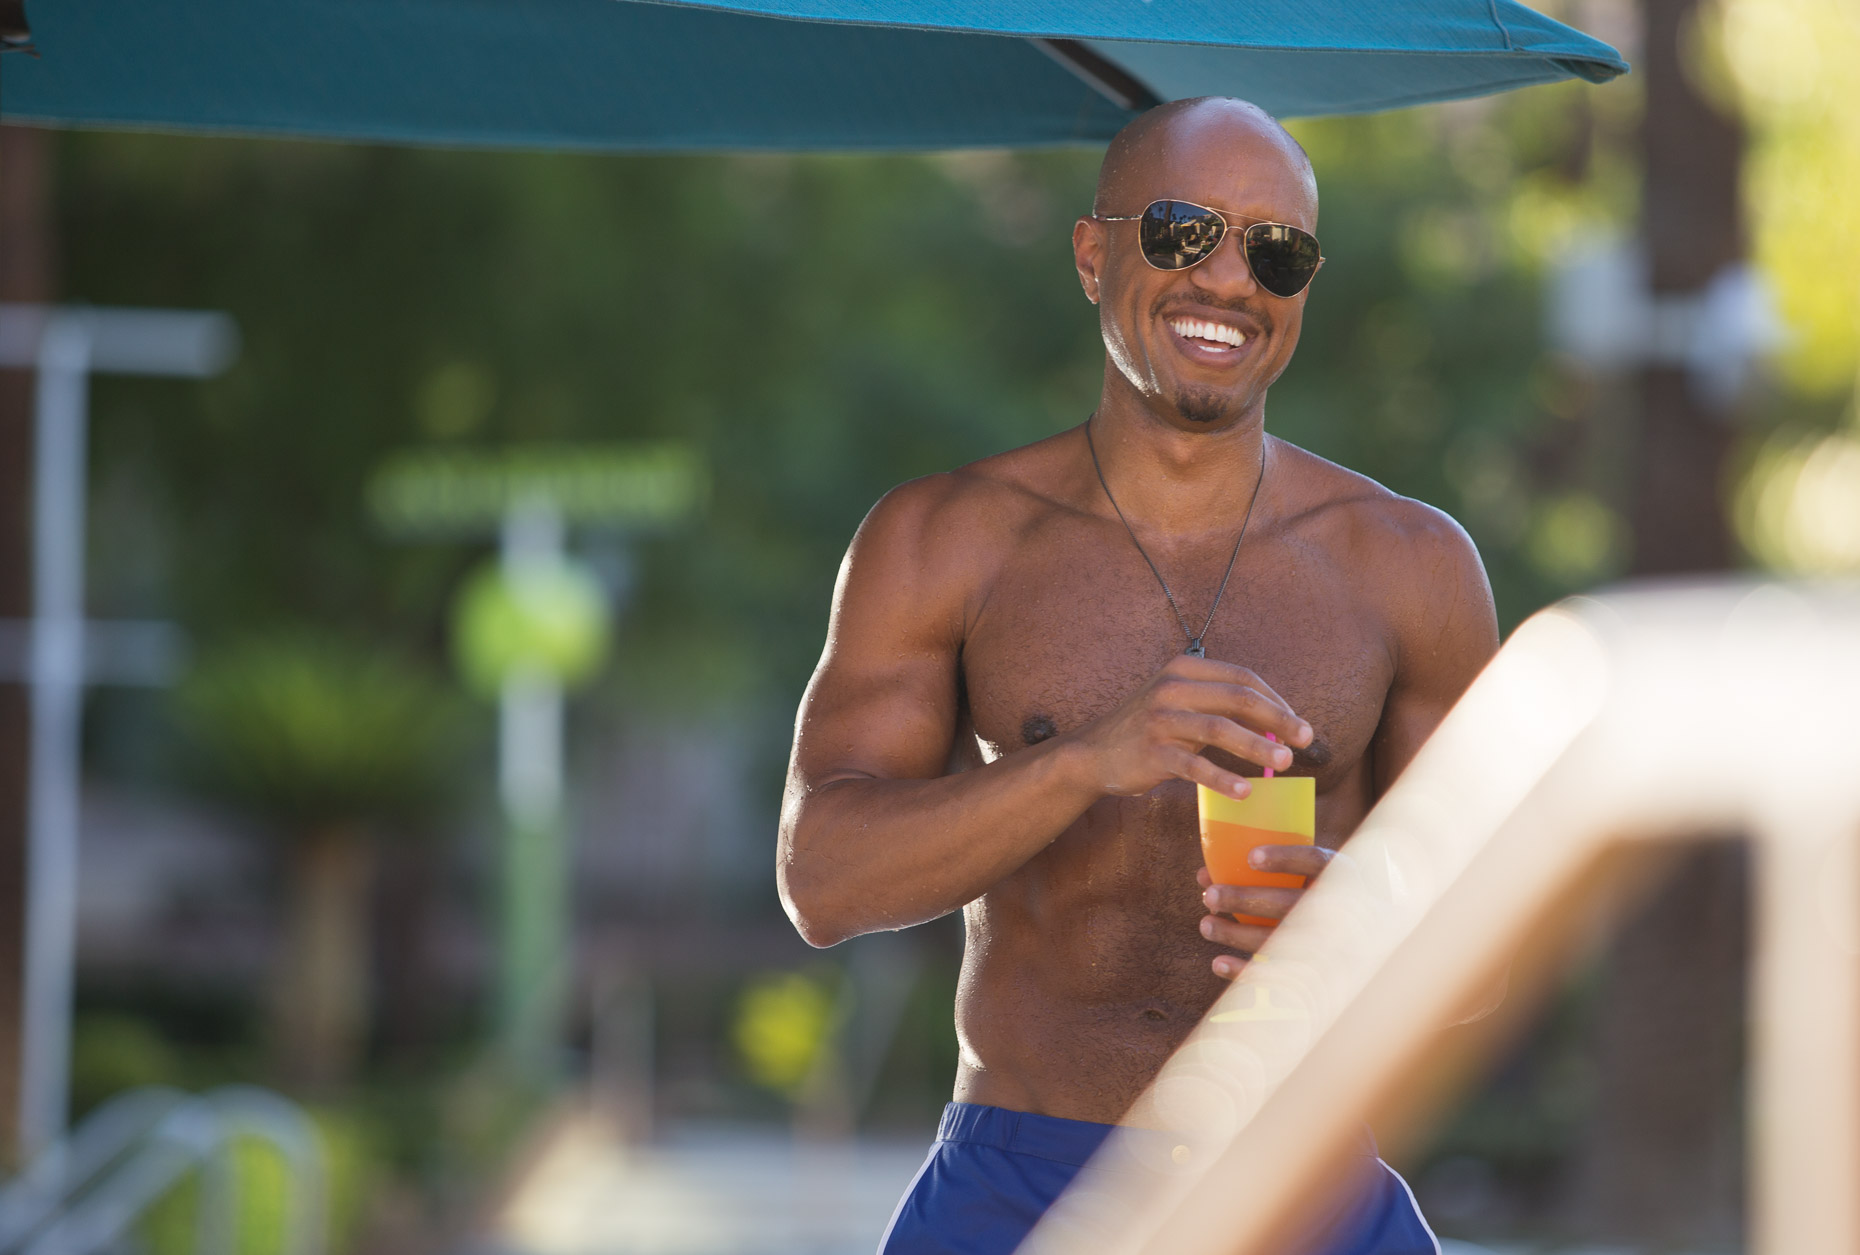 Well fit man enjoys a poolside cocktail